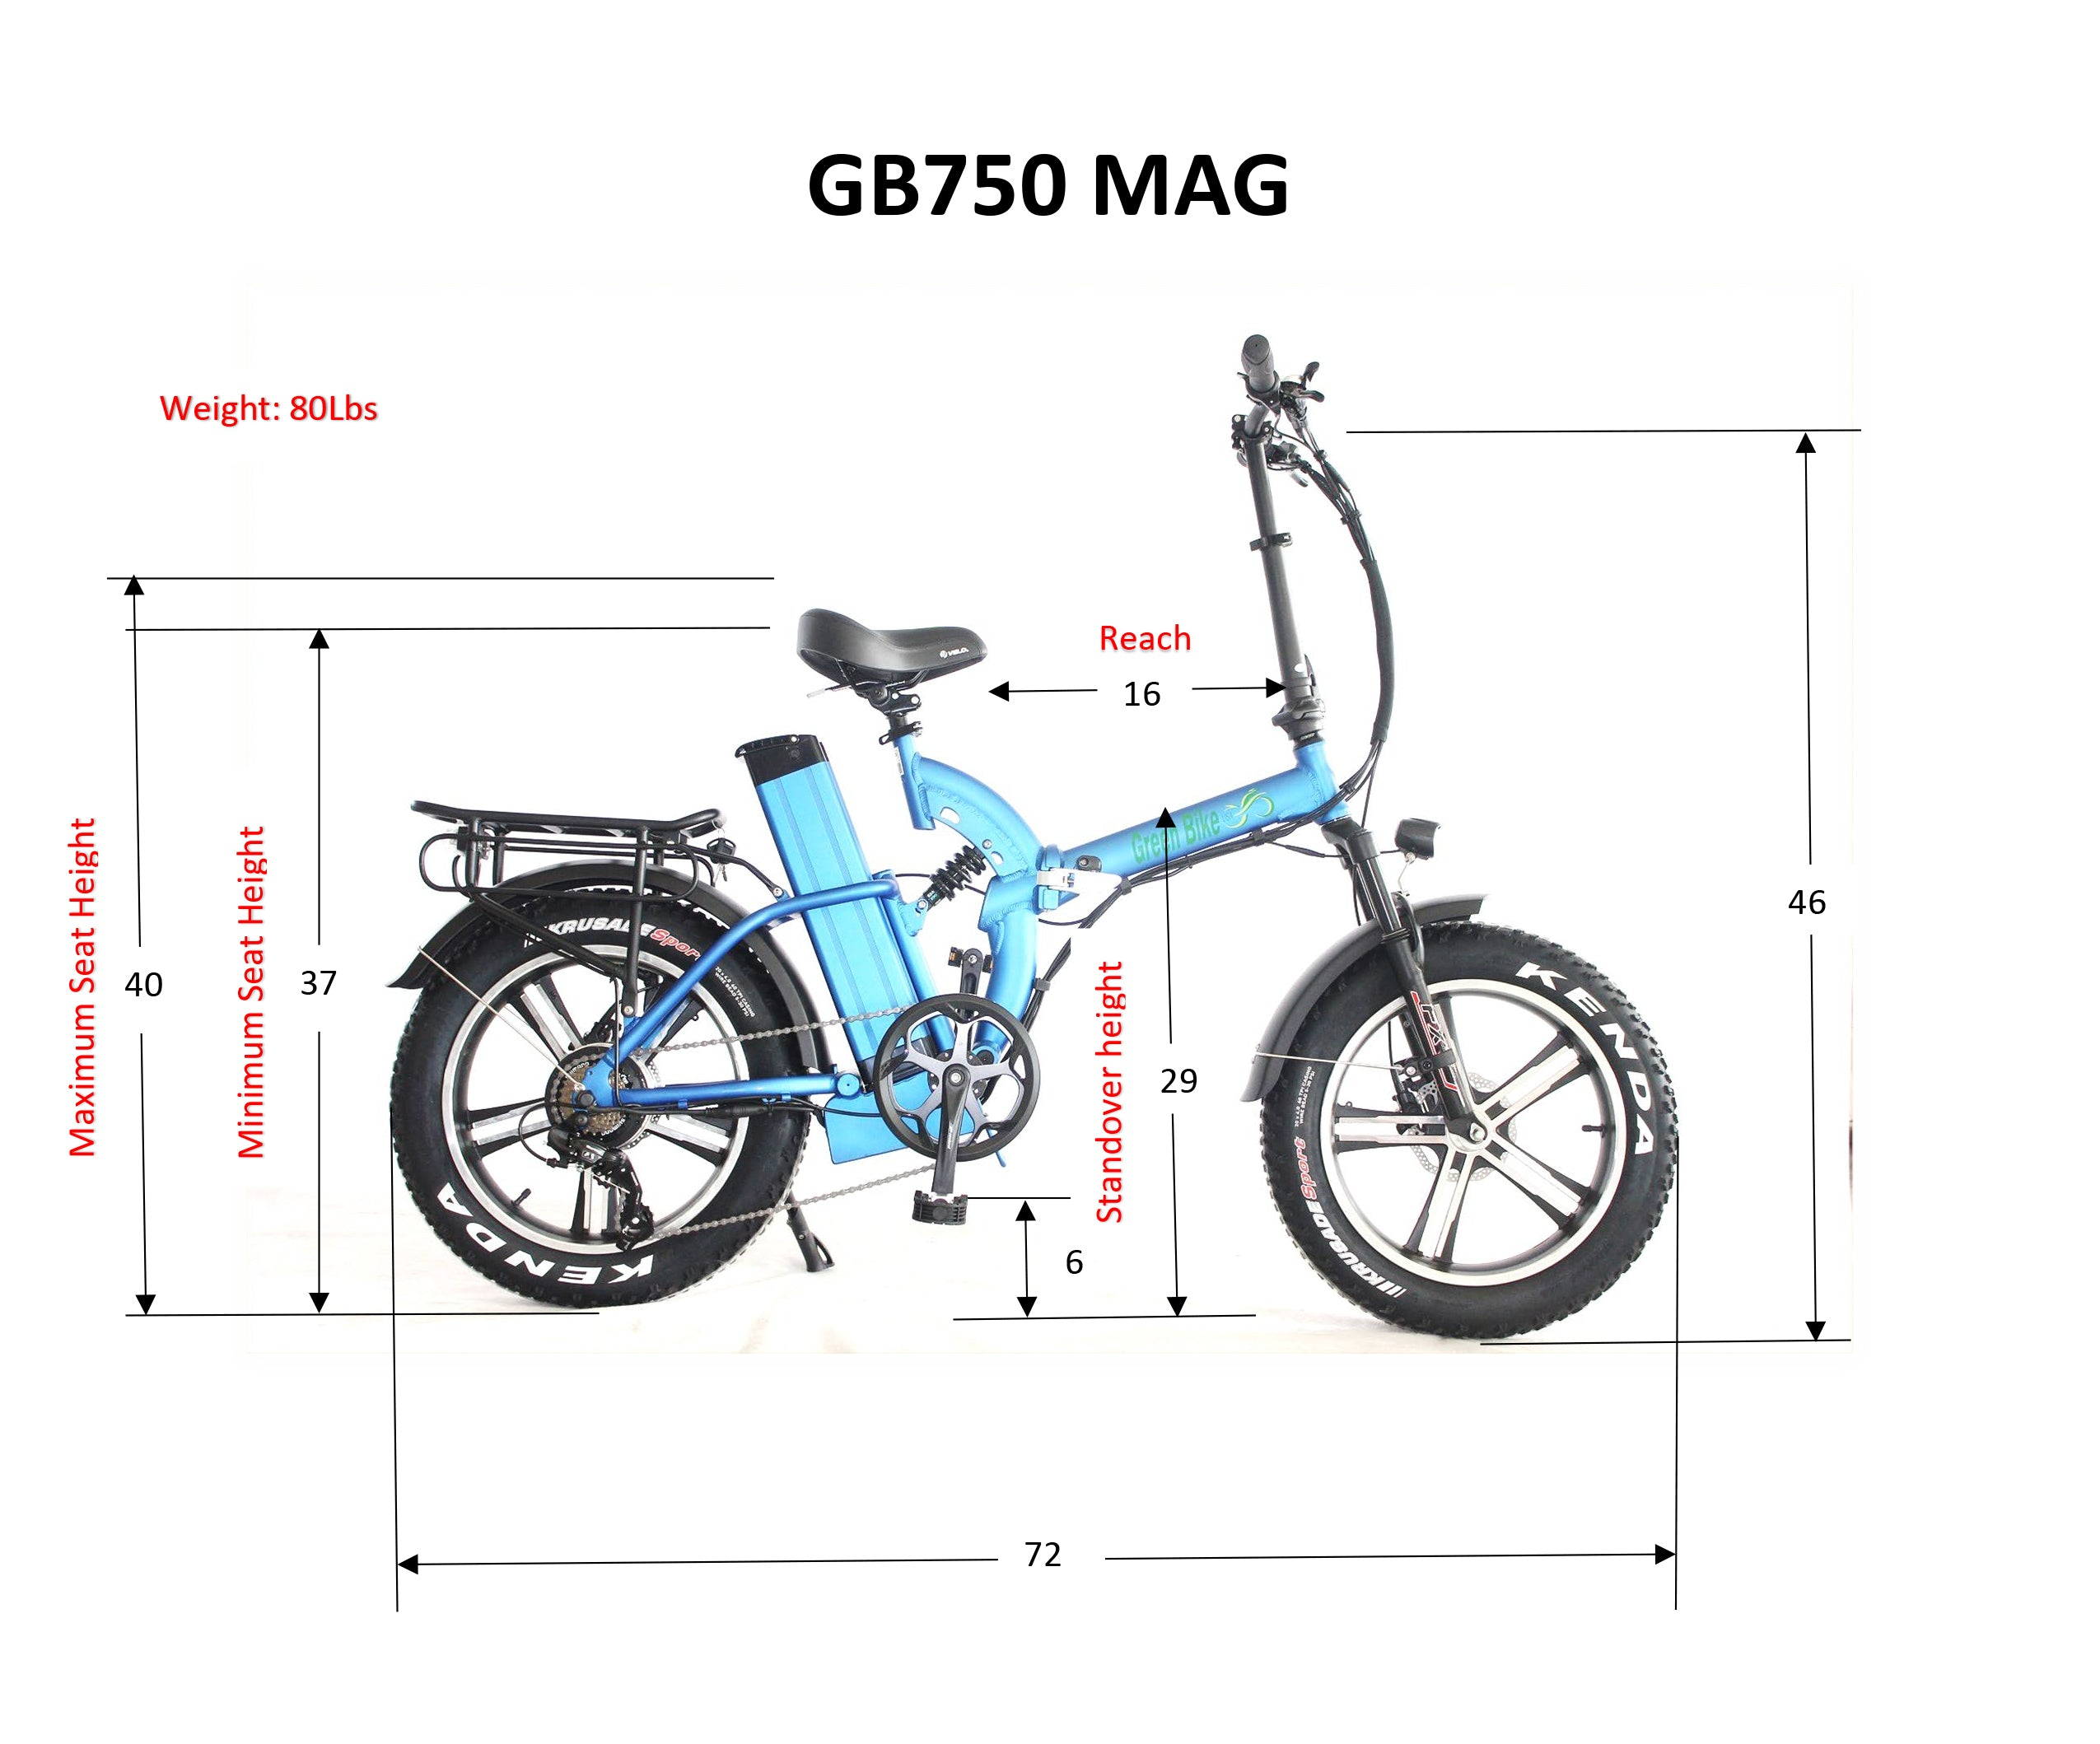 features of gb750 mag by greenbikes usa